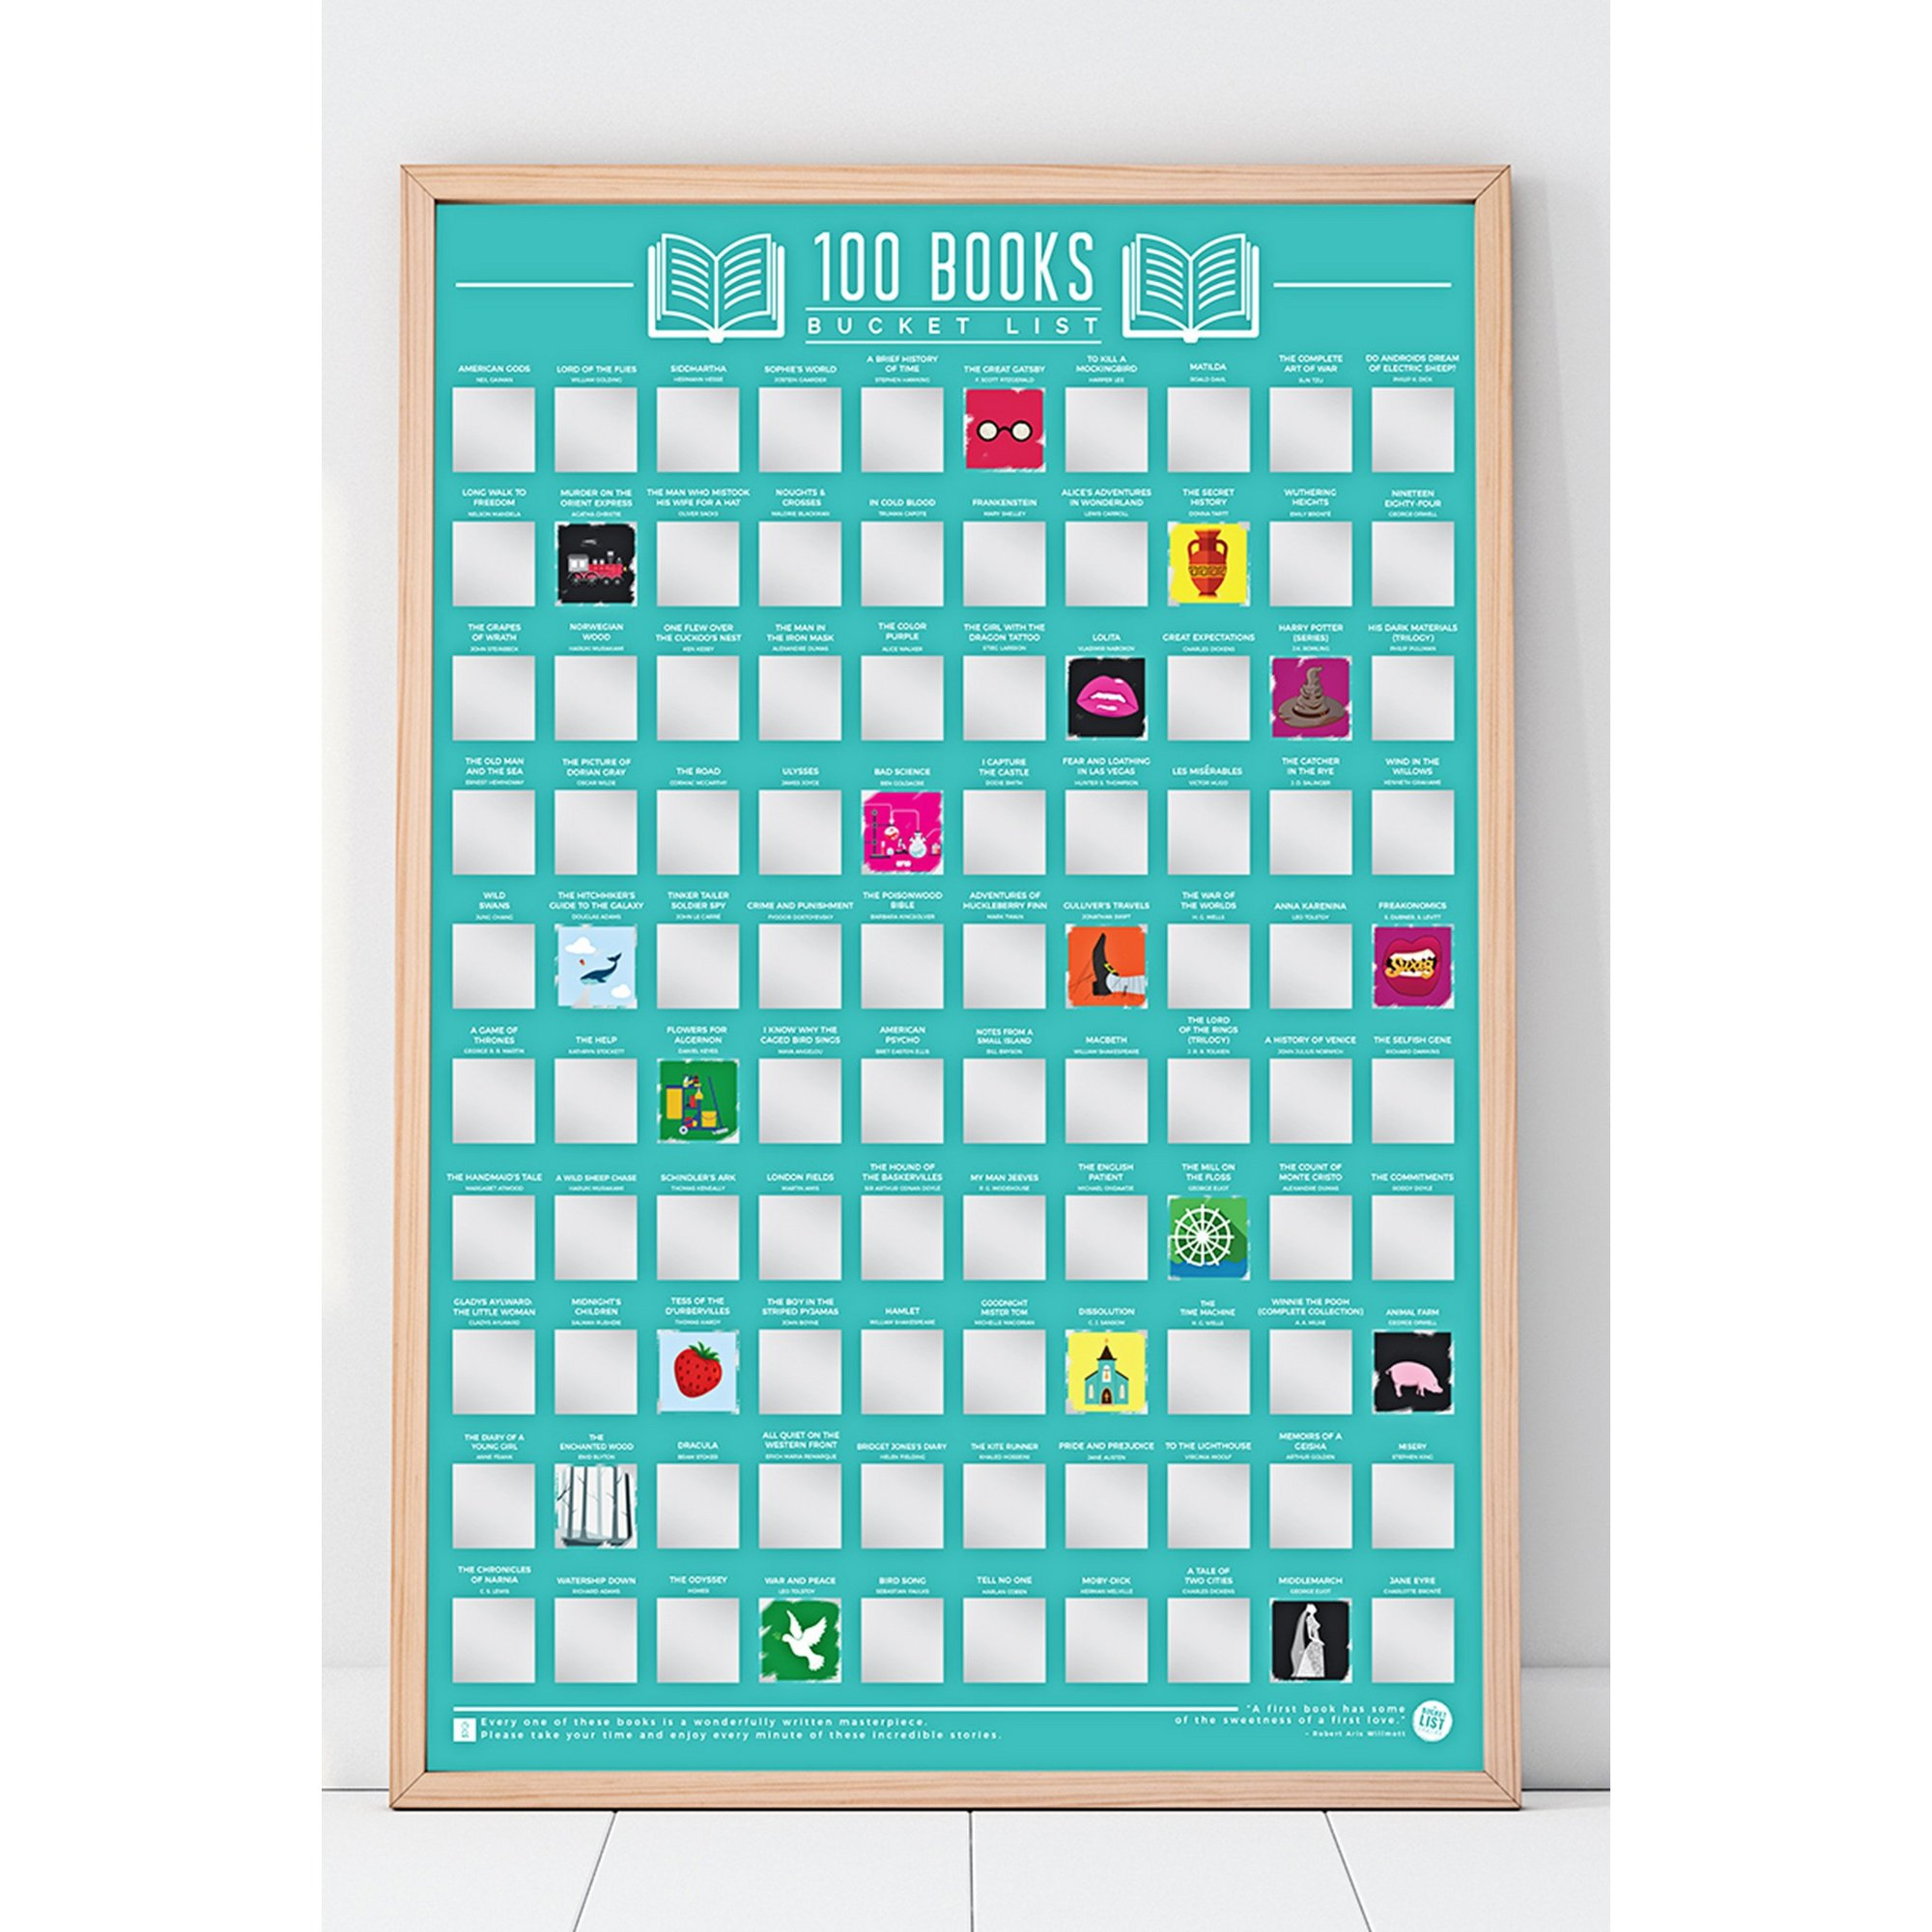 Image of 100 Books Bucket List Scratch off Poster